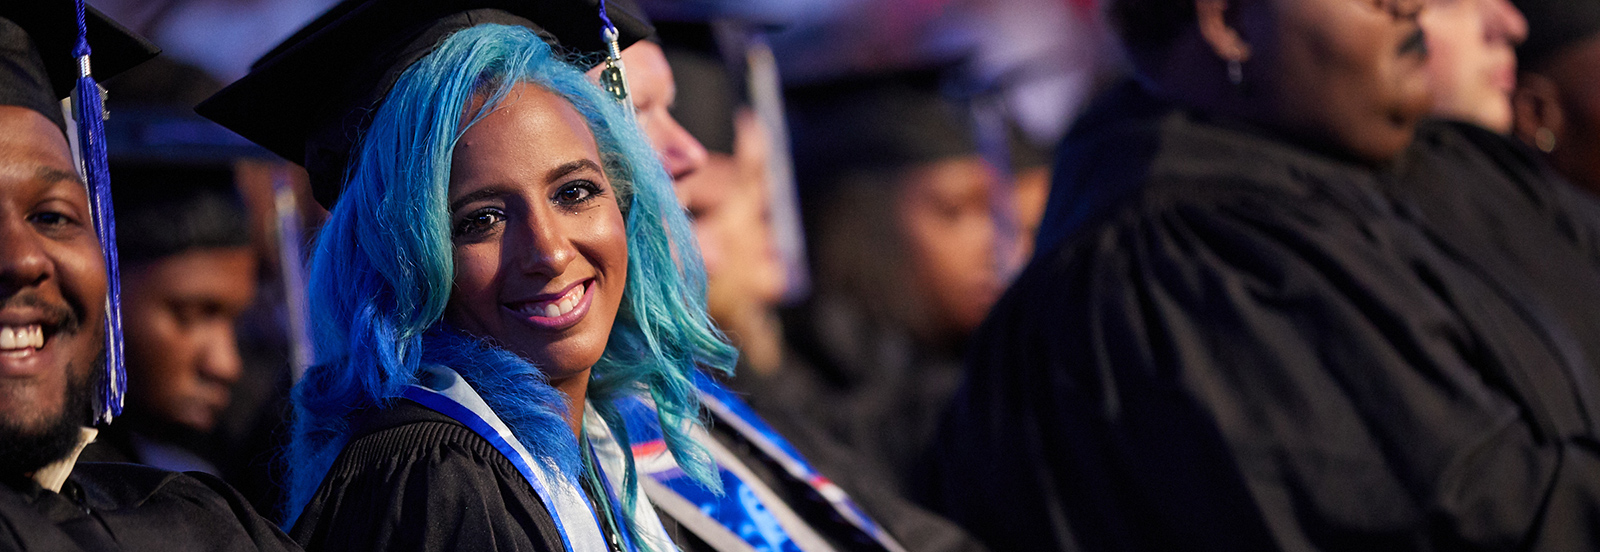 LiFE graduate with blue hair sitting in audience of graduates in commencement regalia